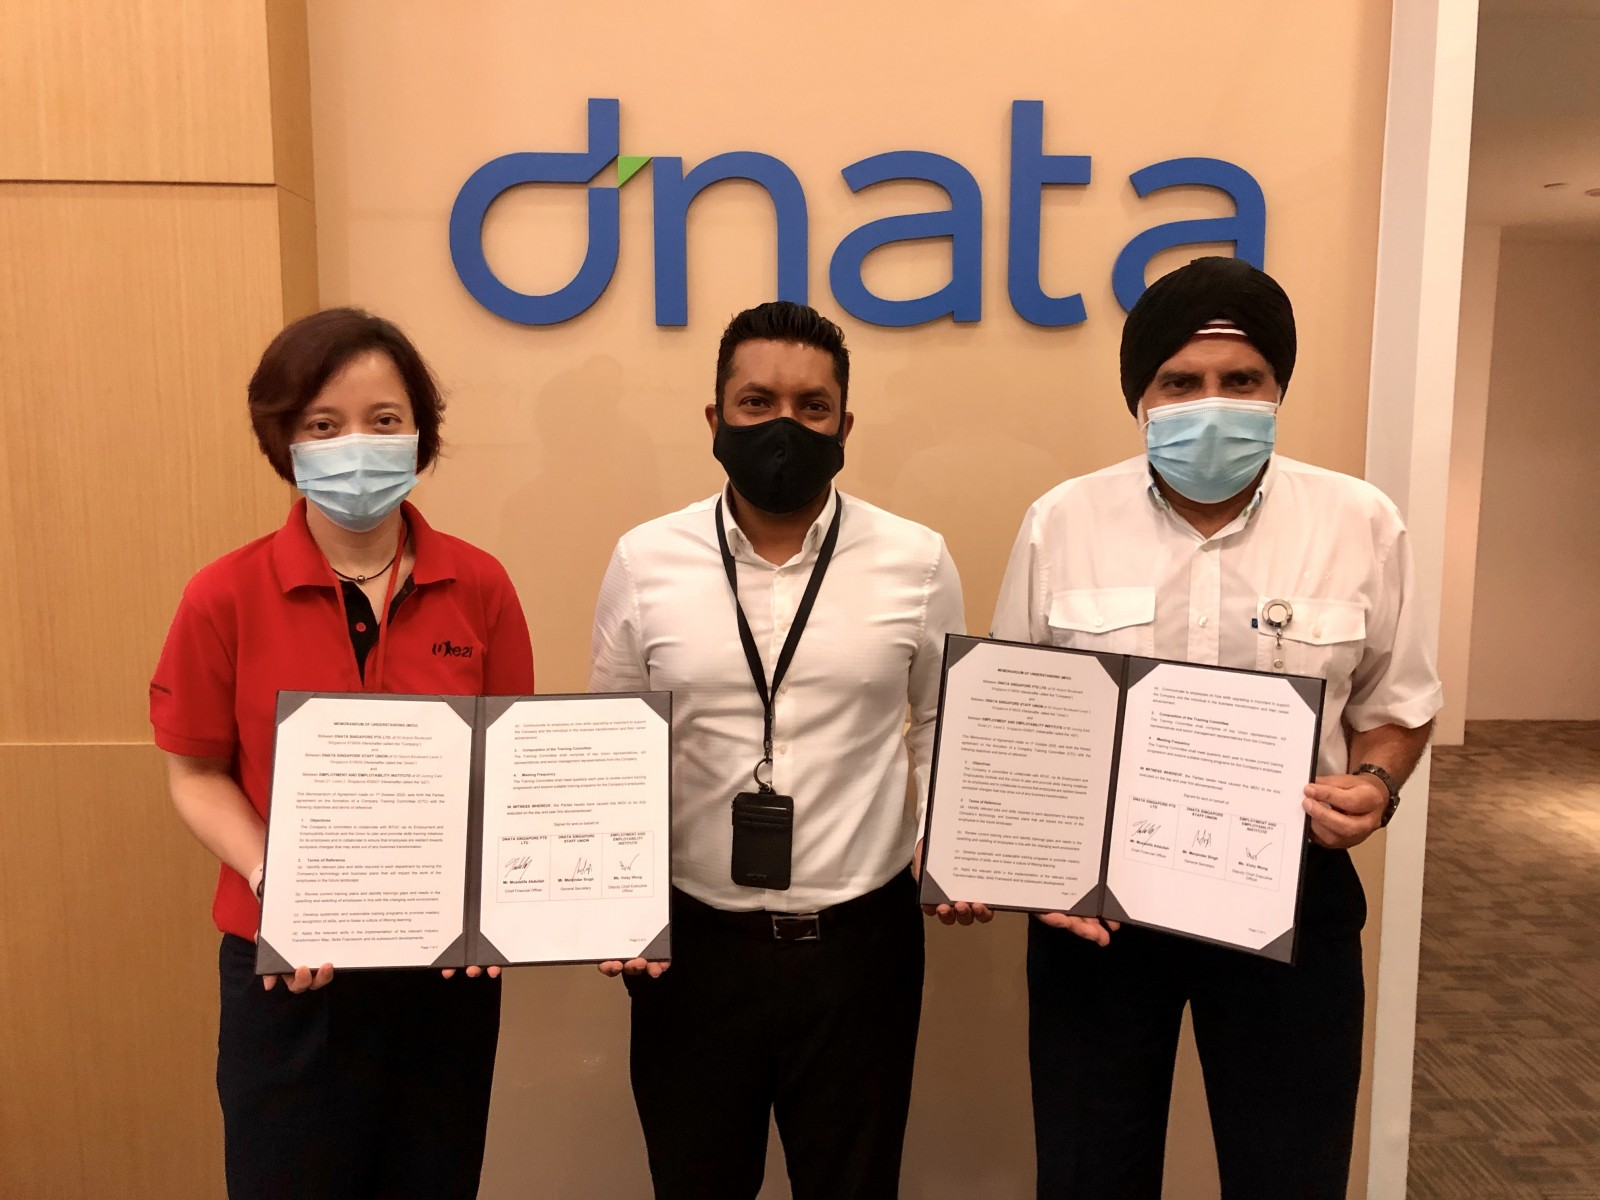 dnata Singapore sets up training committee to upgrade worker skills